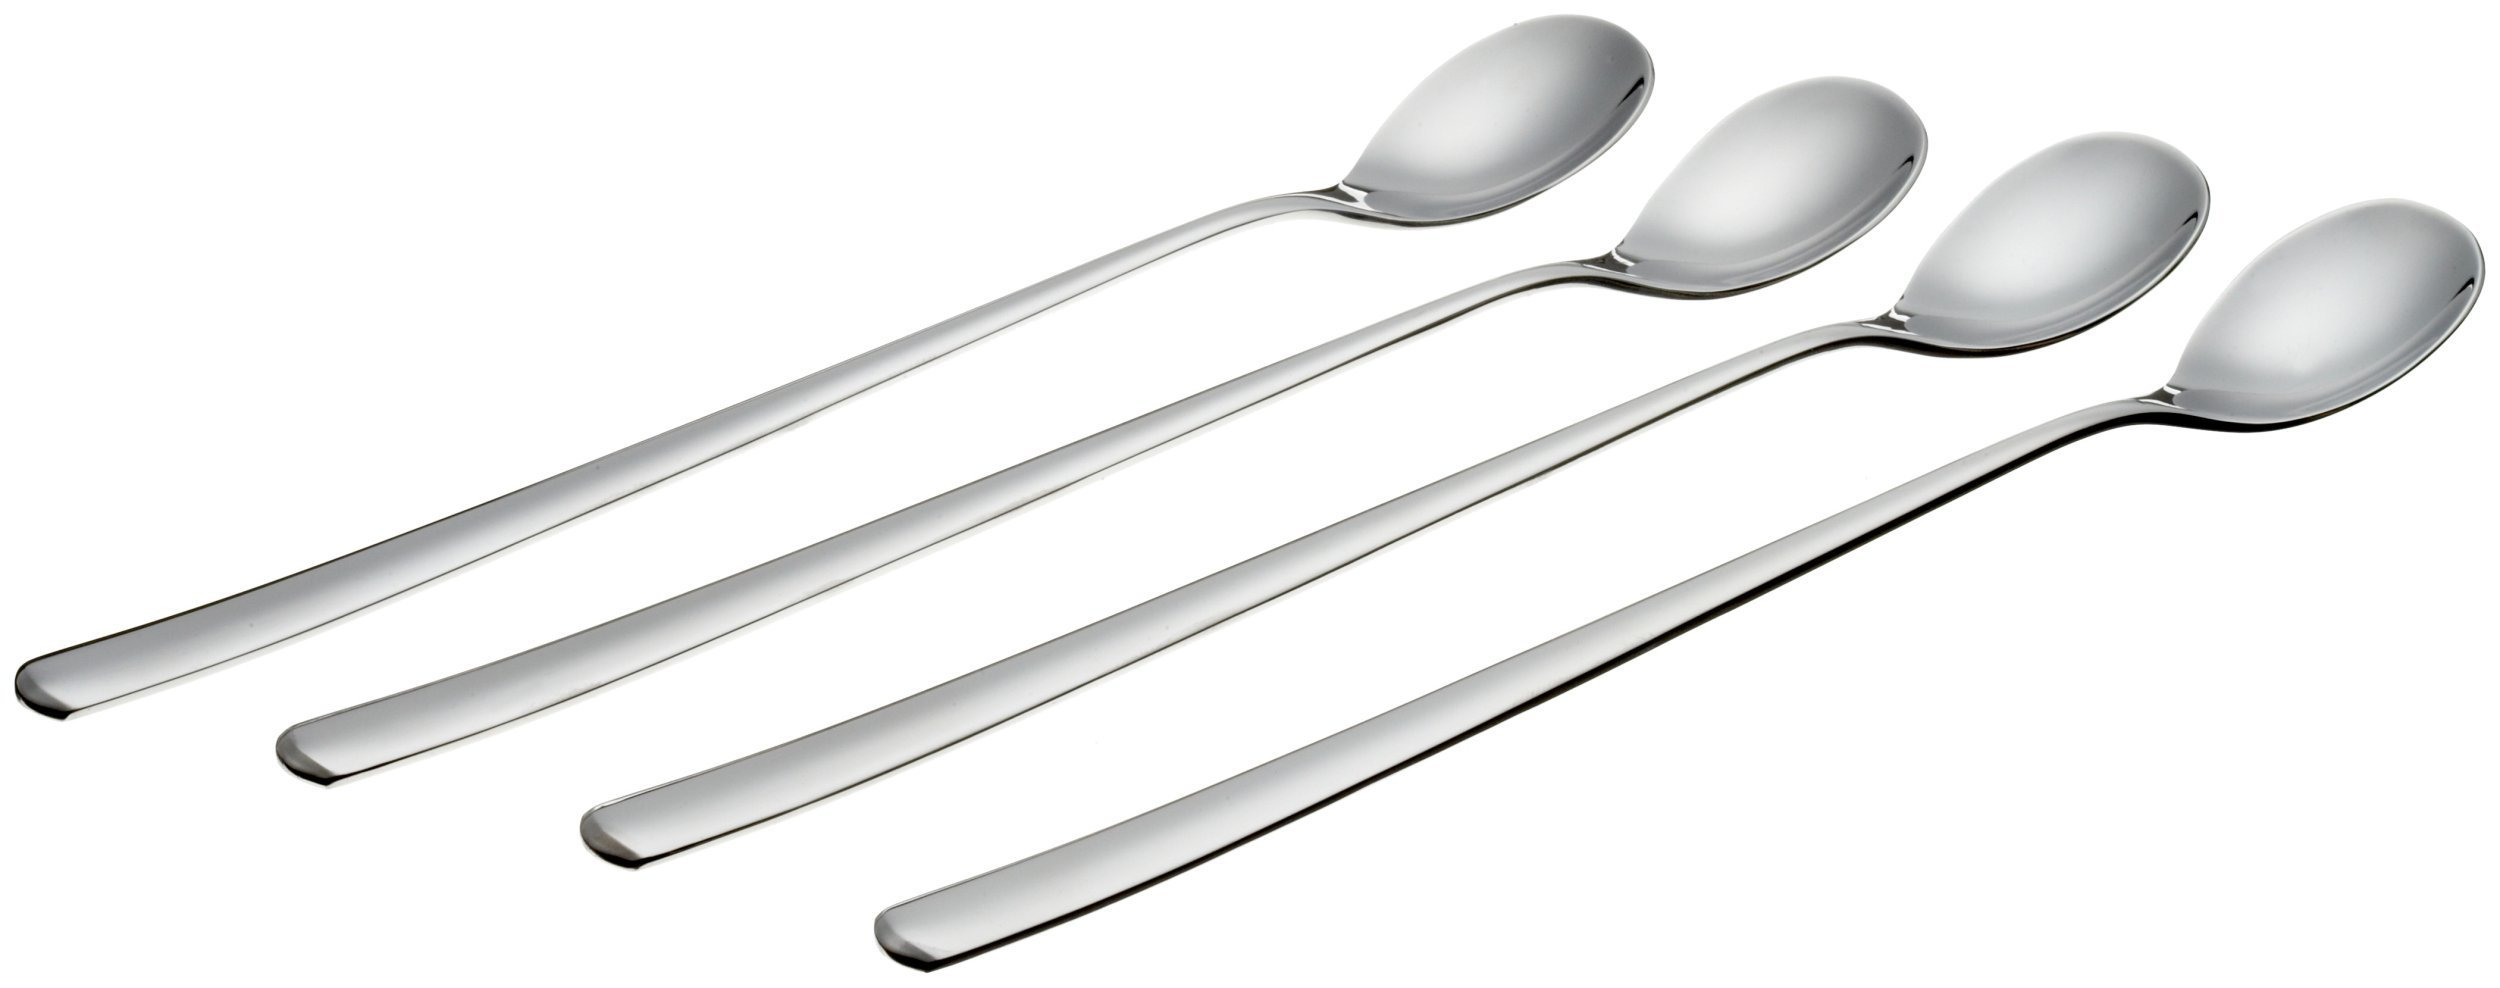 WMF Manaos/Bistro Iced Tea Spoon, Set of 4 by WMF (Image #1)